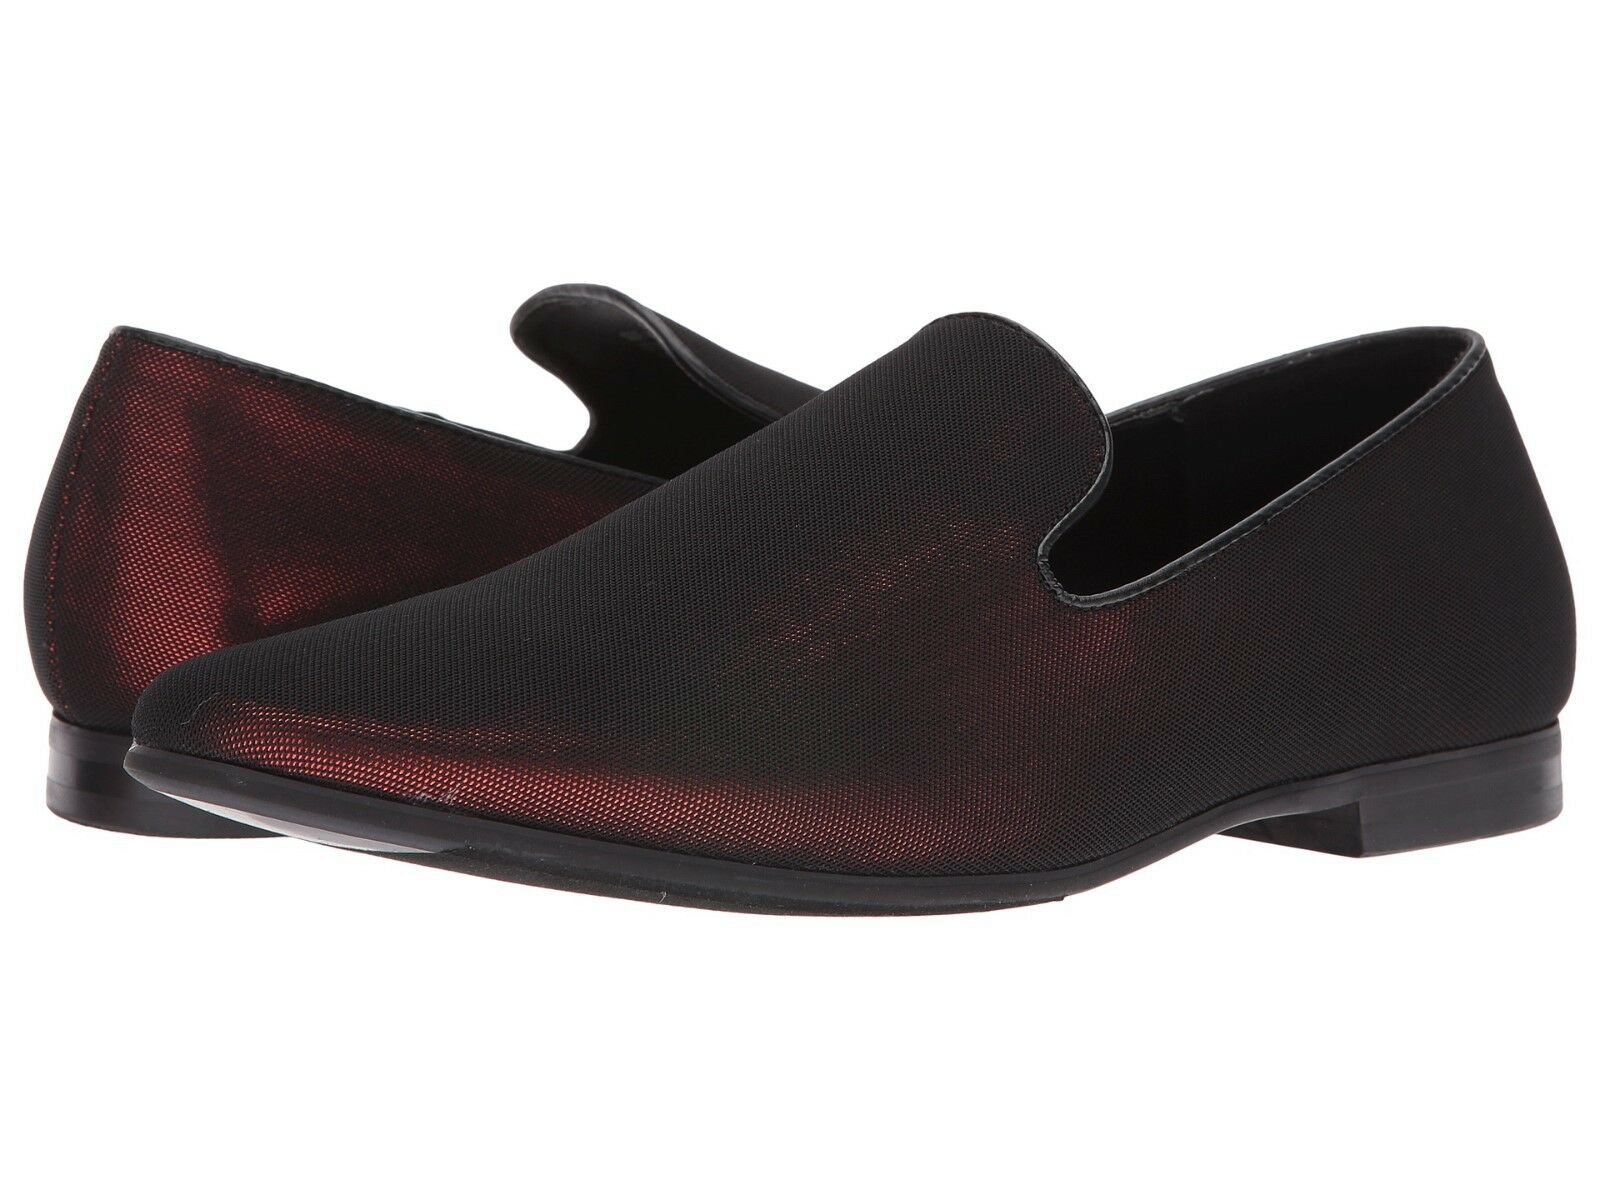 Men's Giorgio Brutini Connell Loafer 7 M Red/black Mesh. About this  product. 10 watching. Picture 1 of 1